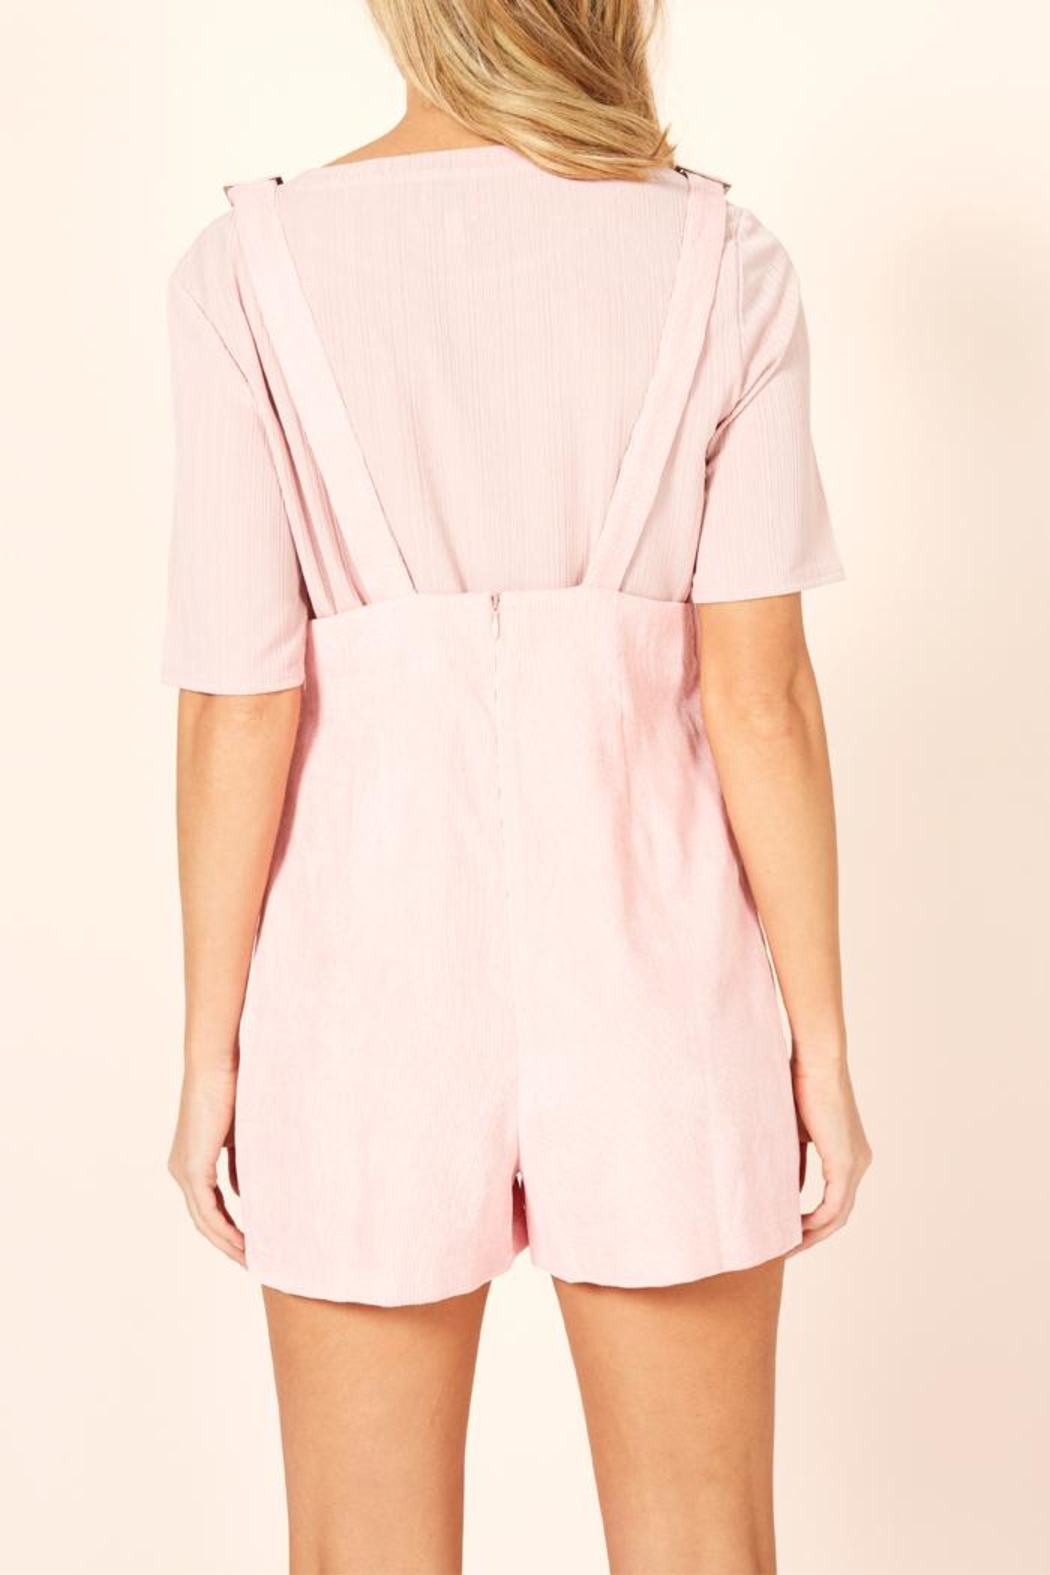 MinkPink Pink Overall Romper - Back Cropped Image